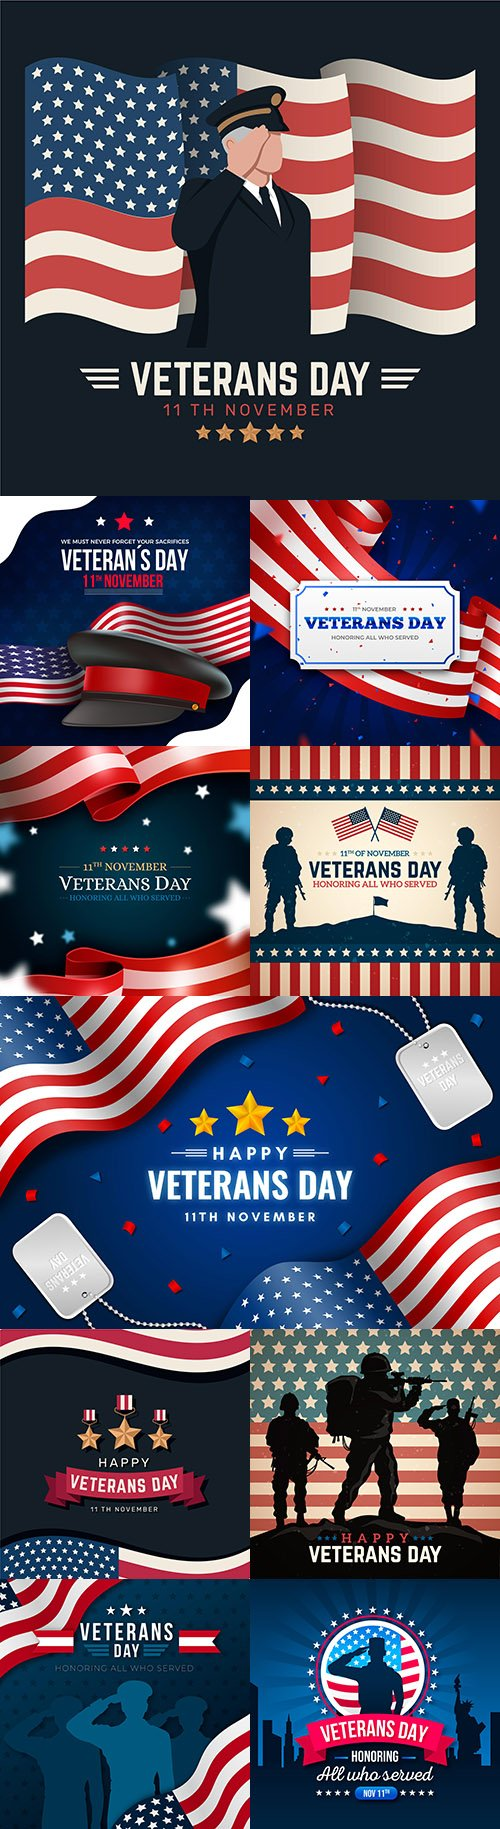 Veterans Day holiday design flat style illustration